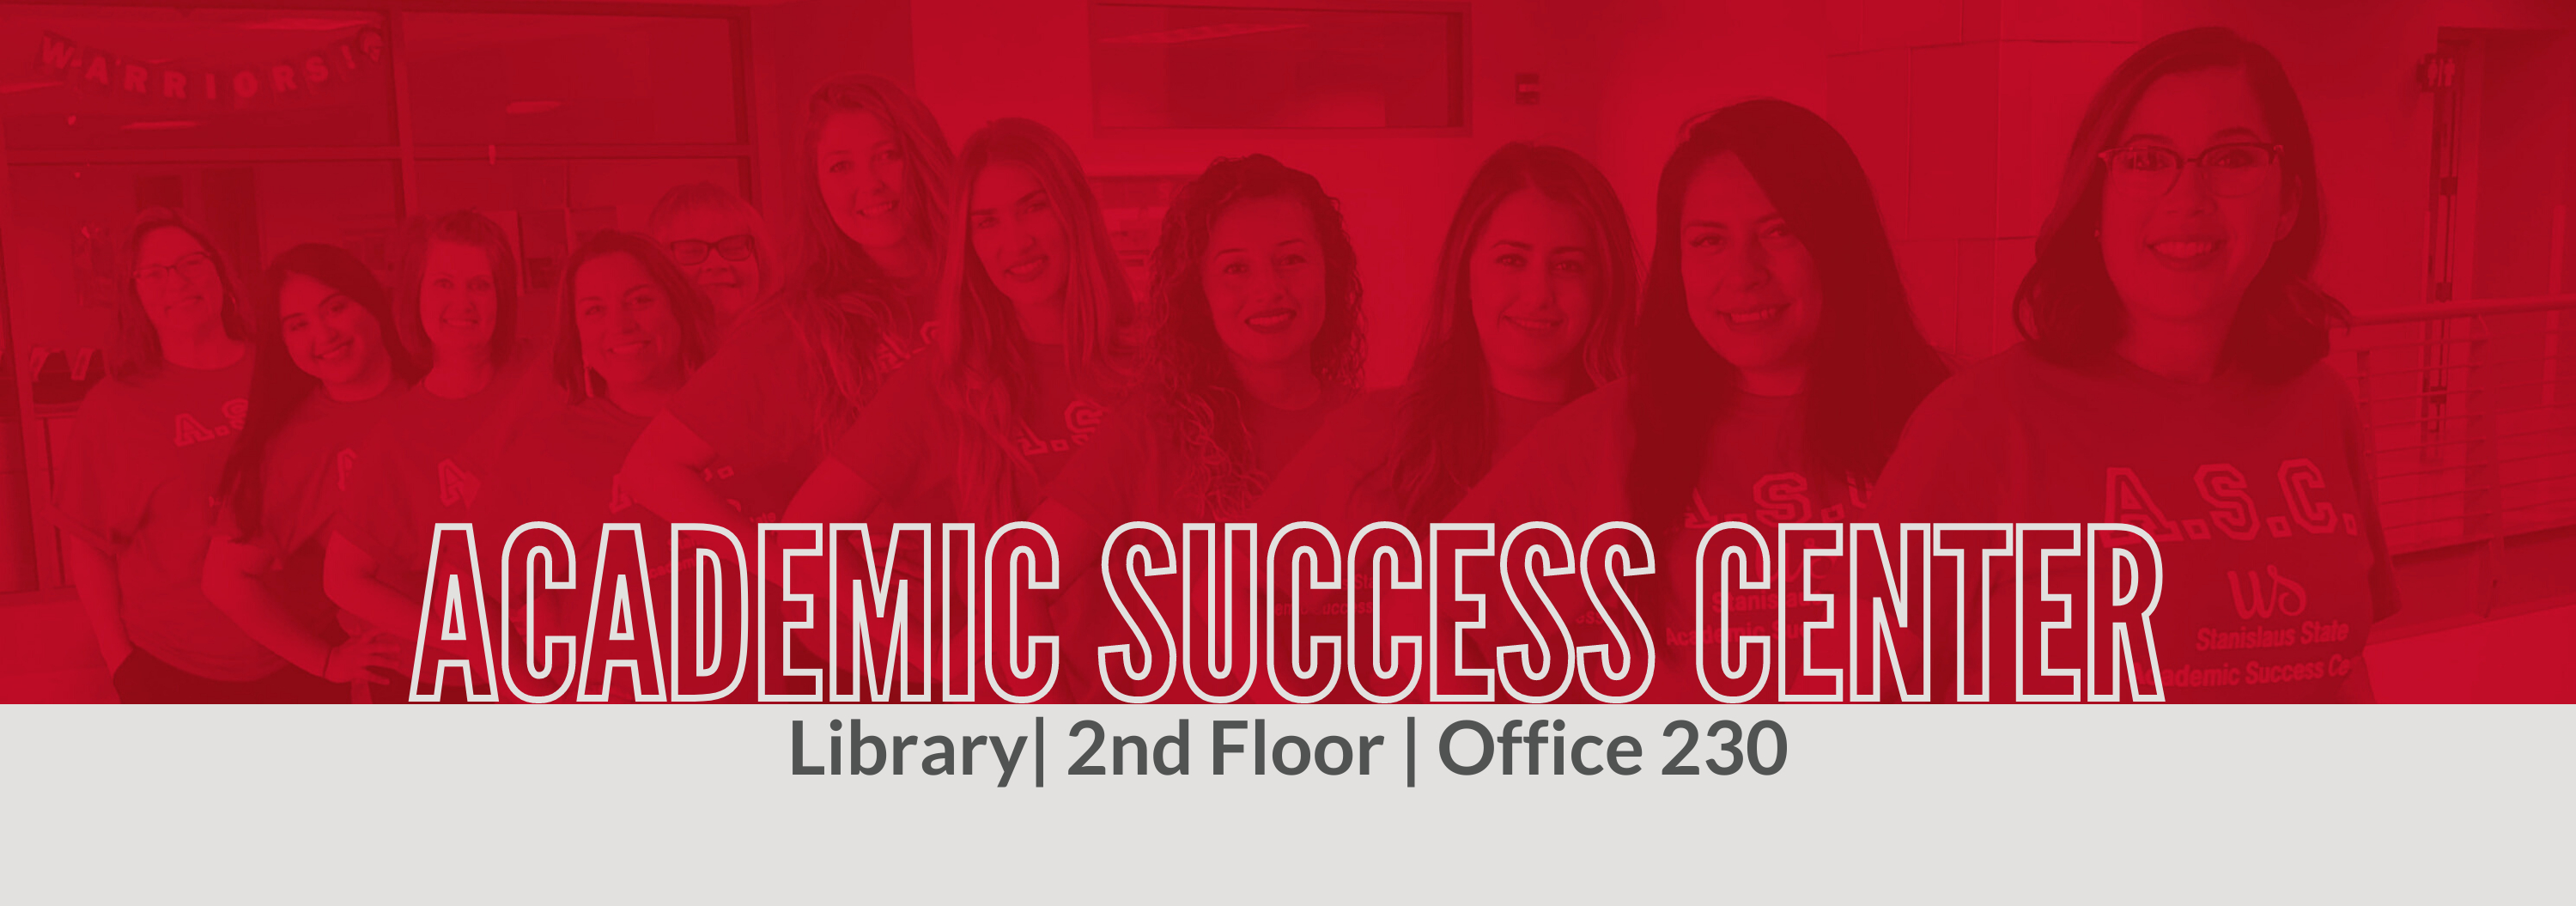 Academic Success Center, Library, 2nd floor, Office 230